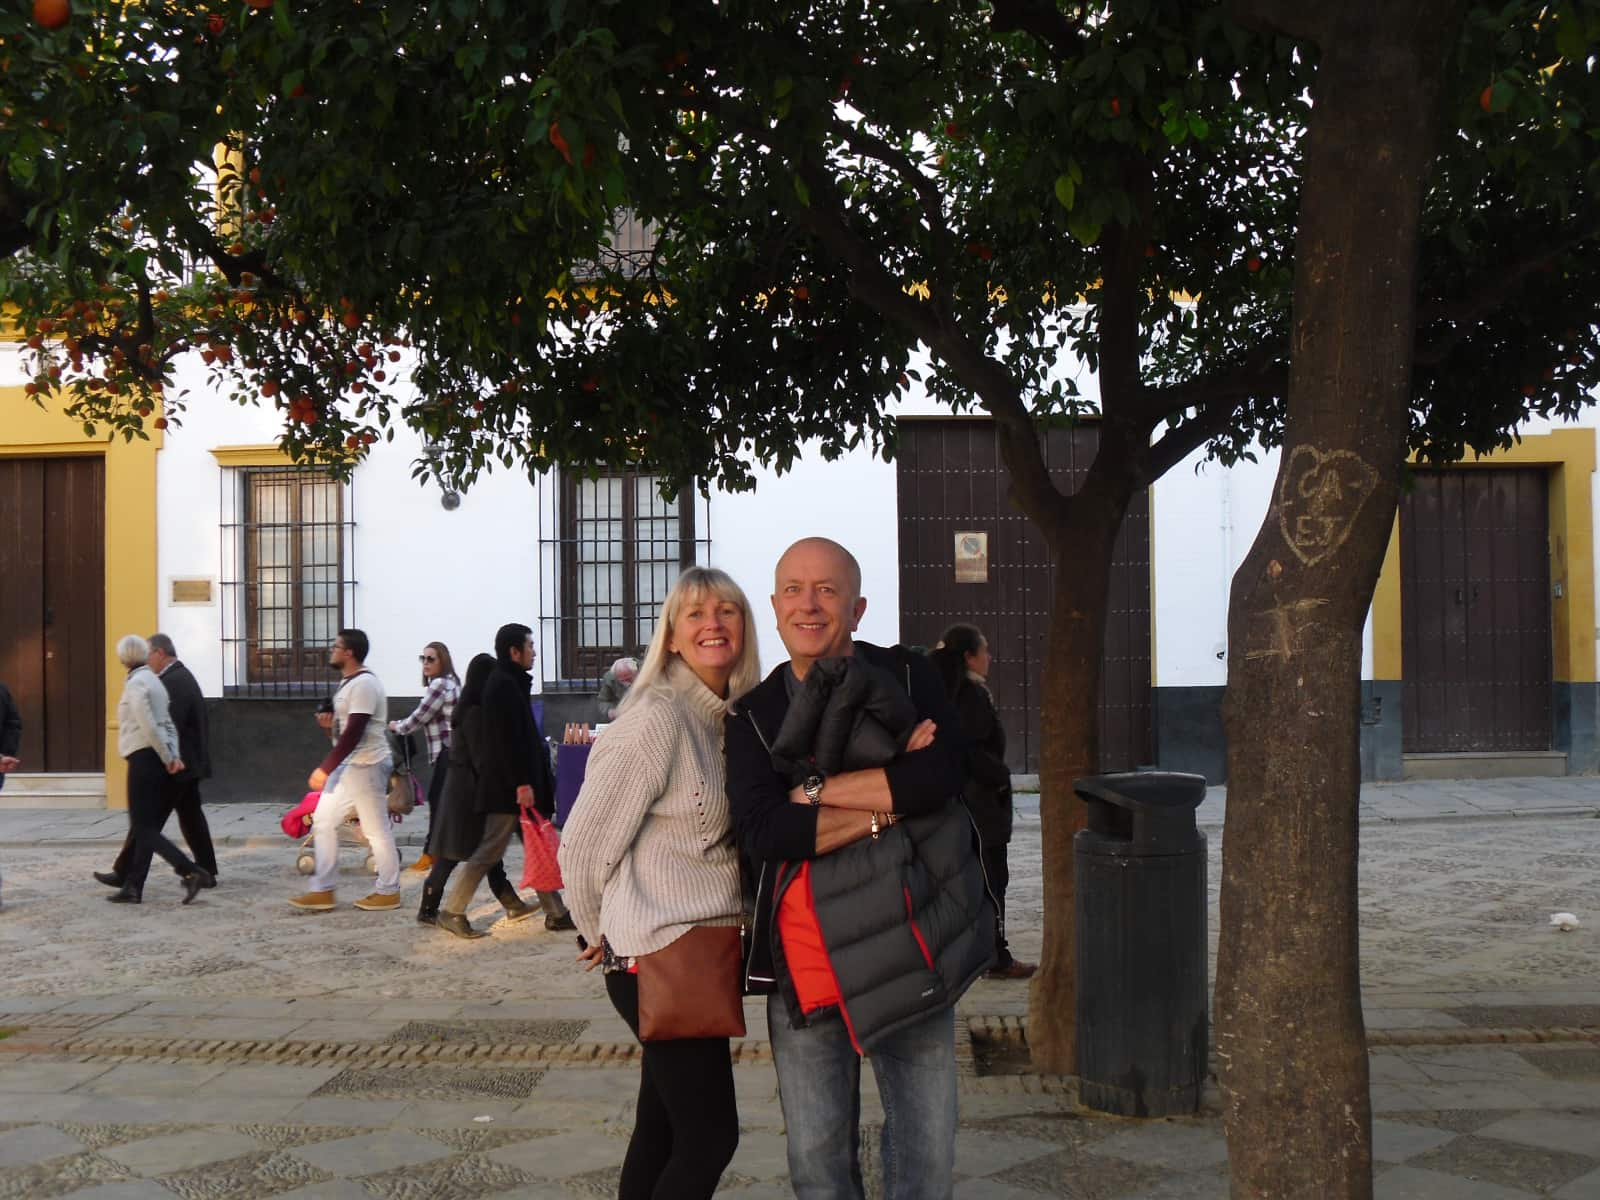 Rosie & Simon from Odiham, United Kingdom